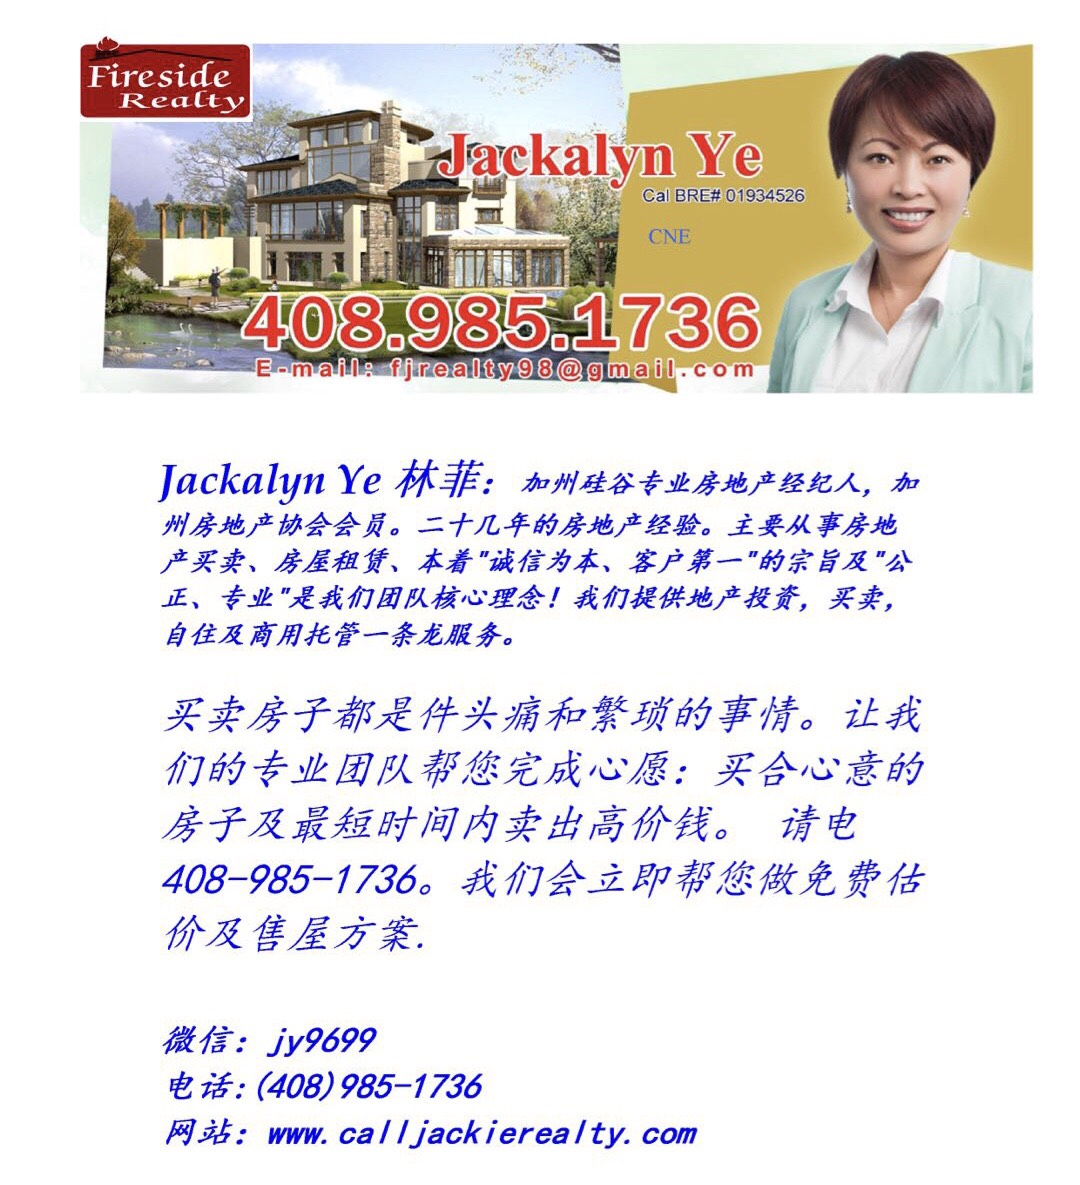 jackierealty